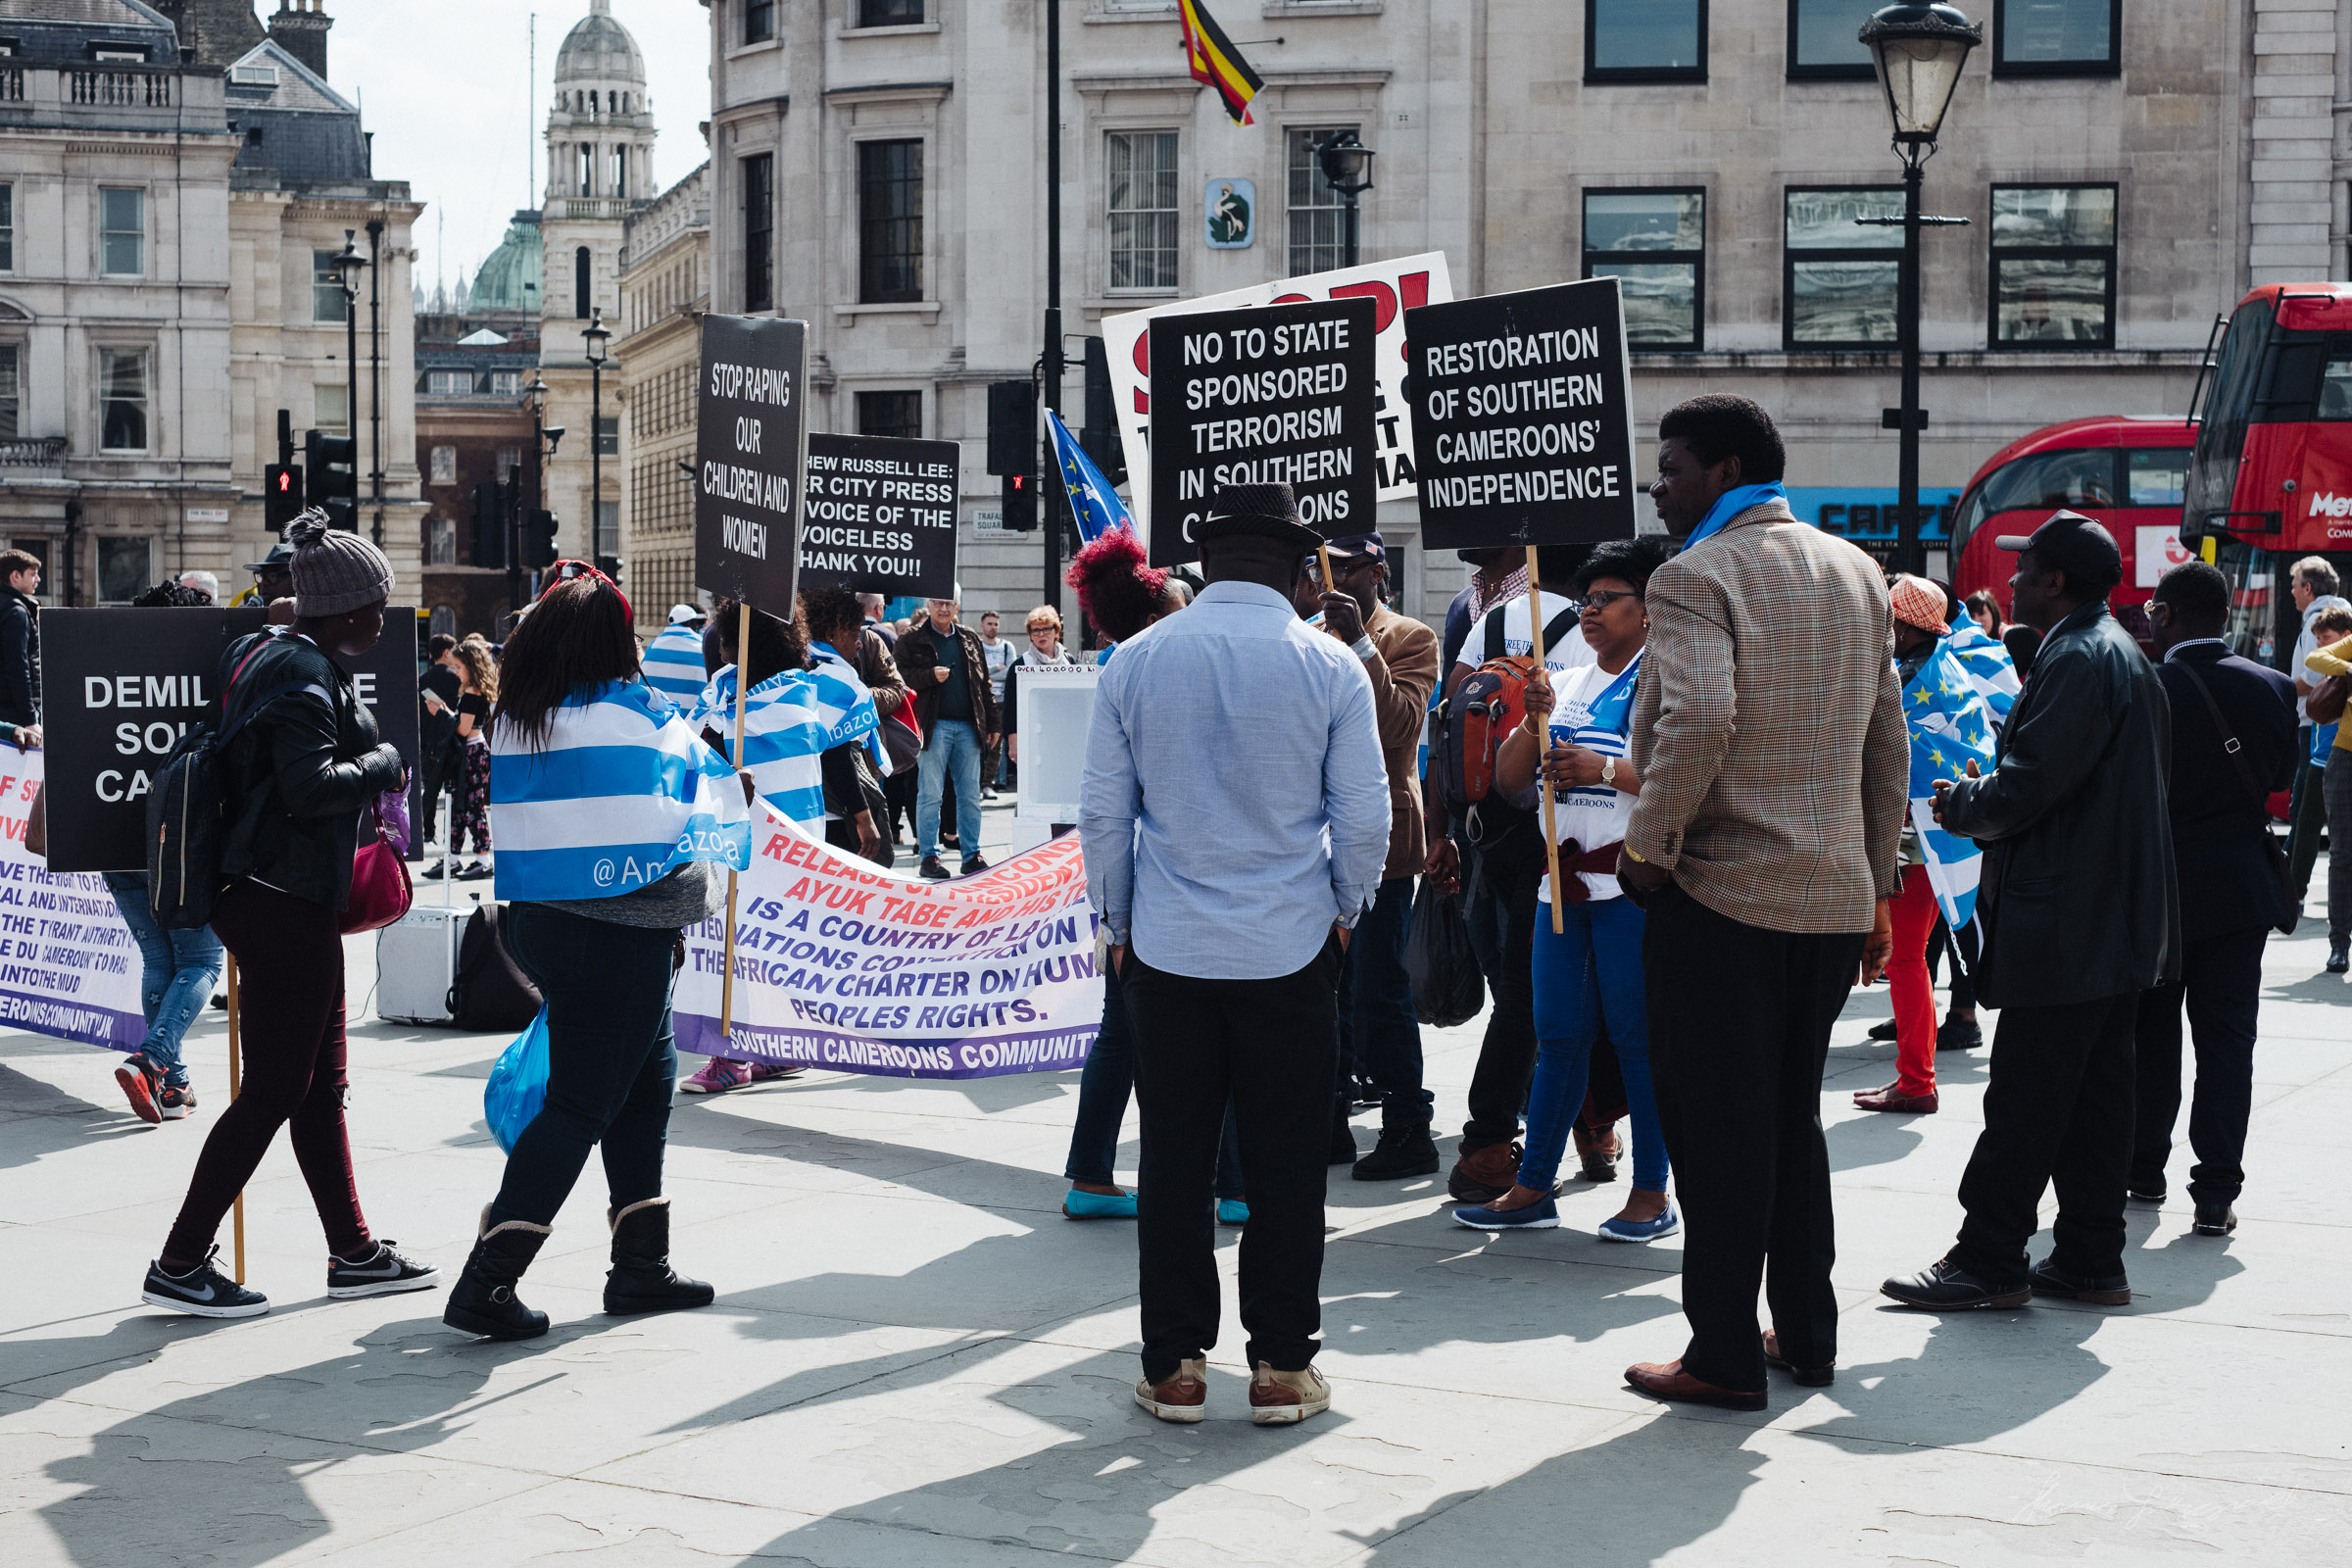 Protest in London at Picadilly circus